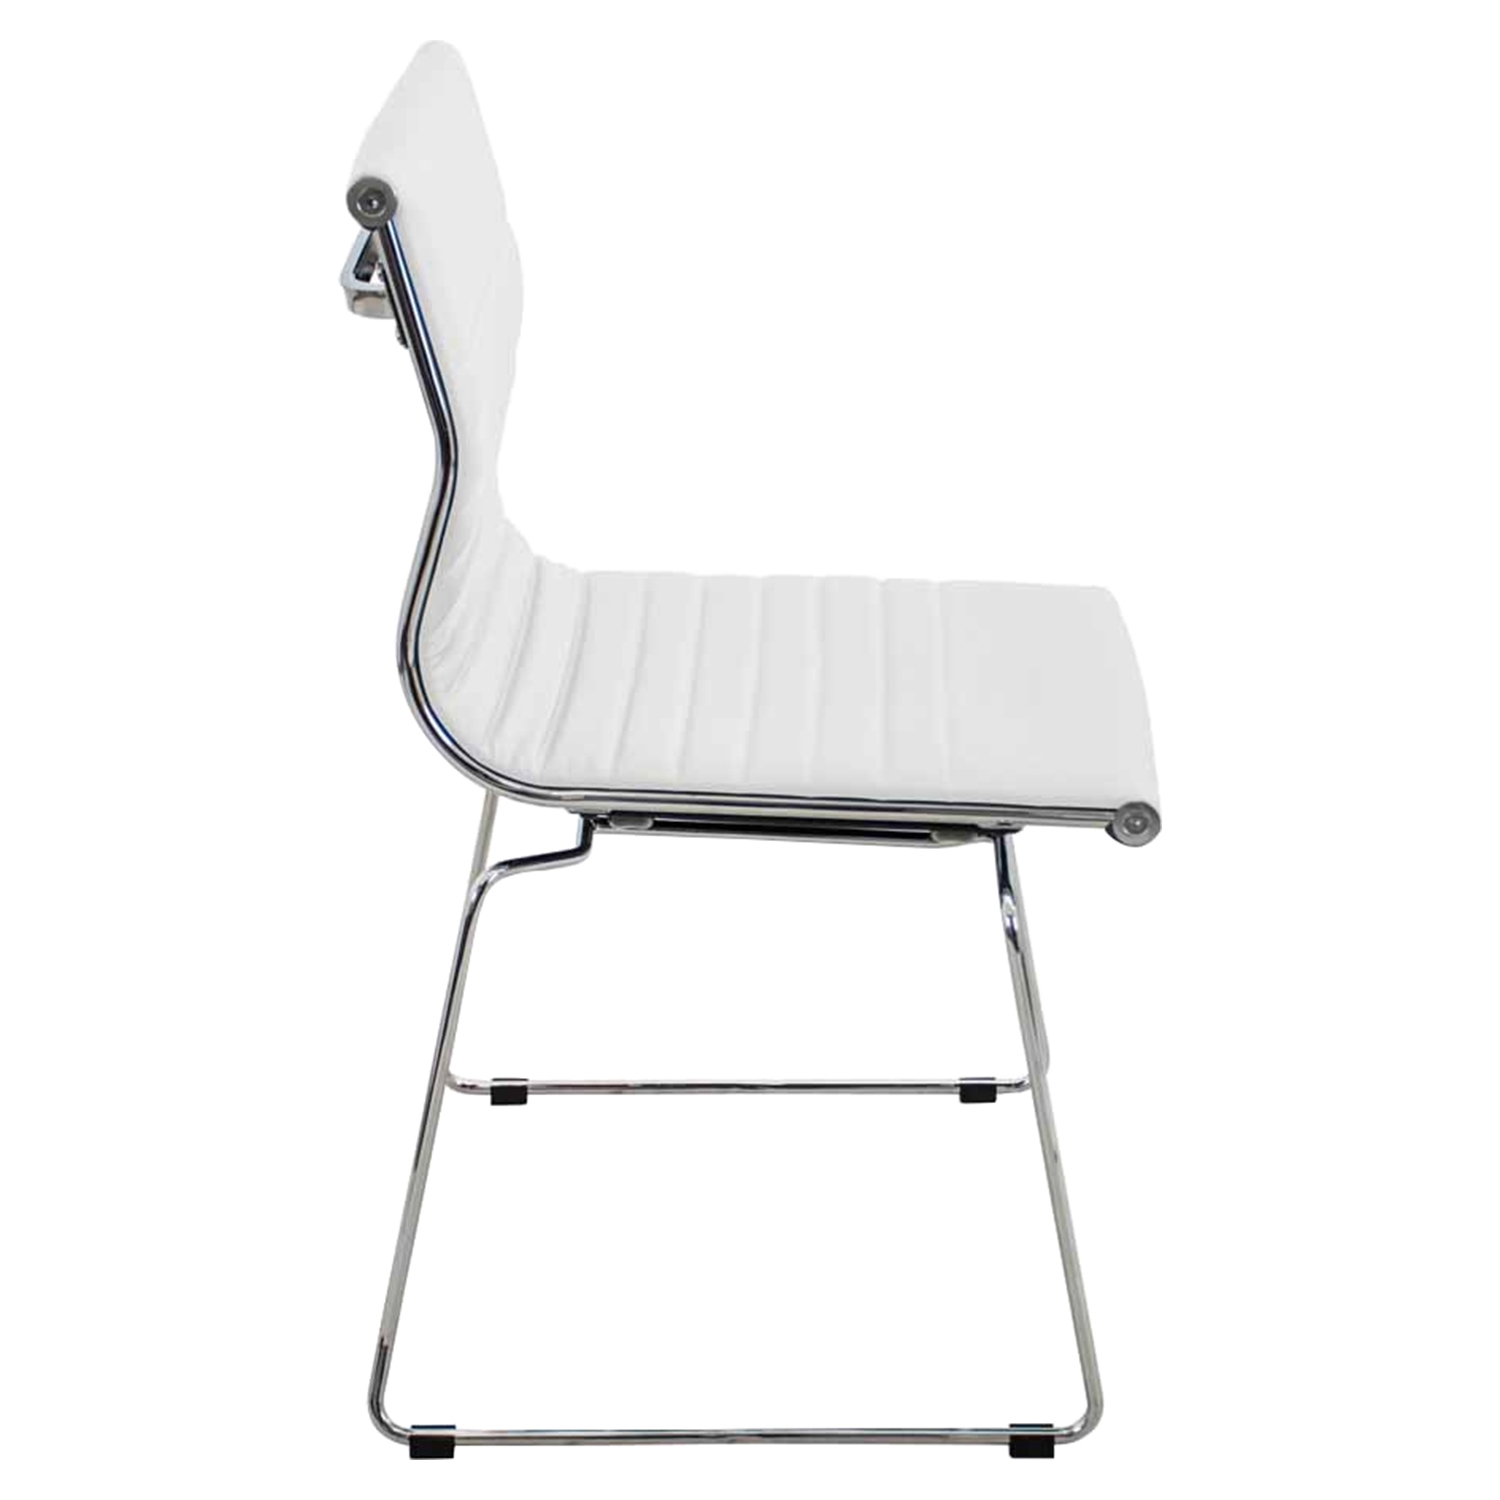 Master Stackable Dining Chair - White (Set of 2) - LMS-CH-MSTR-W-K2